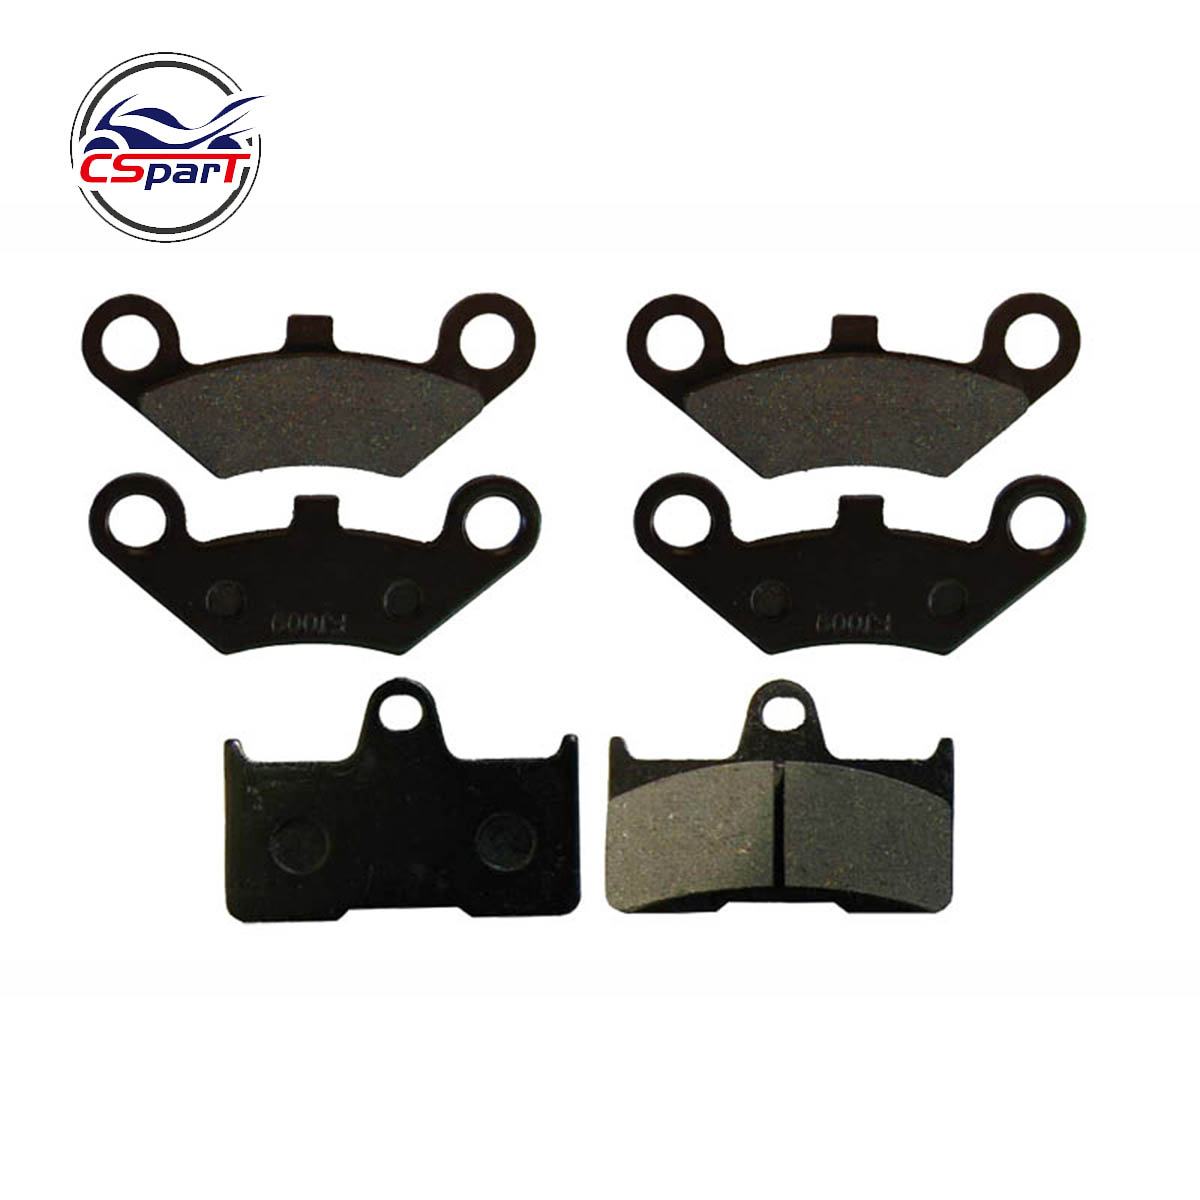 3 Pairs Semi Metallic Front Rear Brake Pad For CFmoto CF500 500 500CC  CF600 600 600CC X5 X6 X8 U5 ATV UTV Shineary